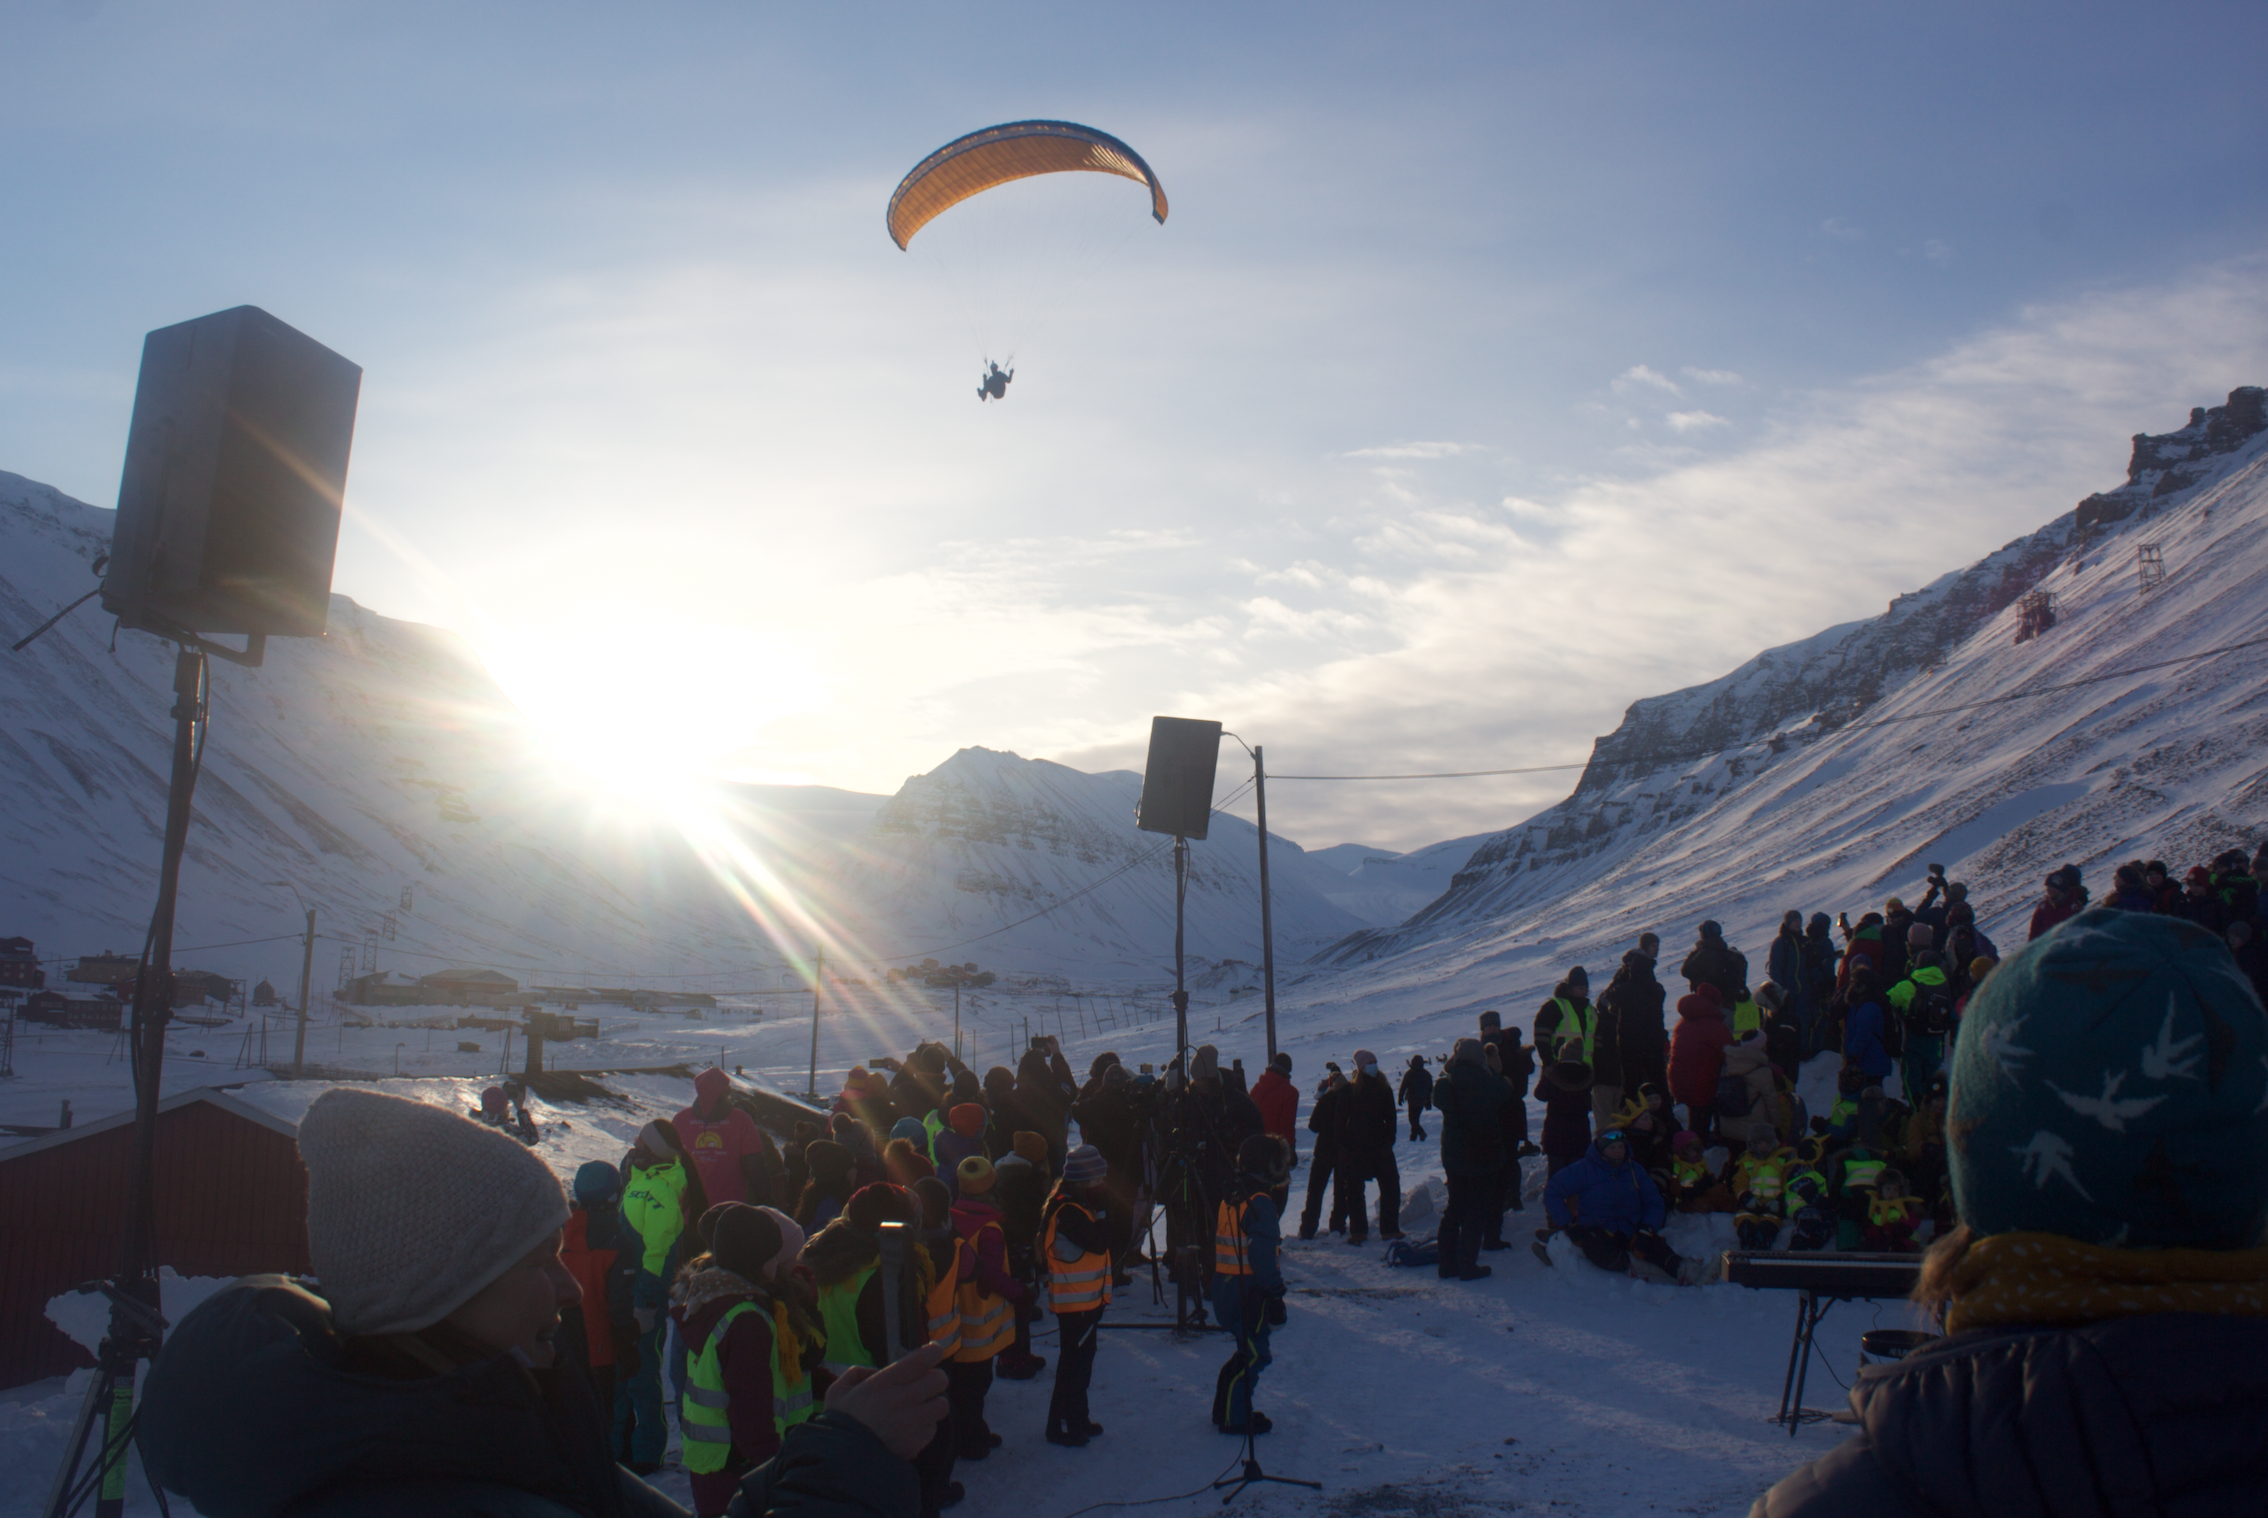 NO MASKING THIS SUNNY SPIRIT: First rays of sun return to Longyearbyen in four months as hundreds gather for Solfestuka celebration w/ only tiny COVID-19 cloud to put folks in a 'zone'